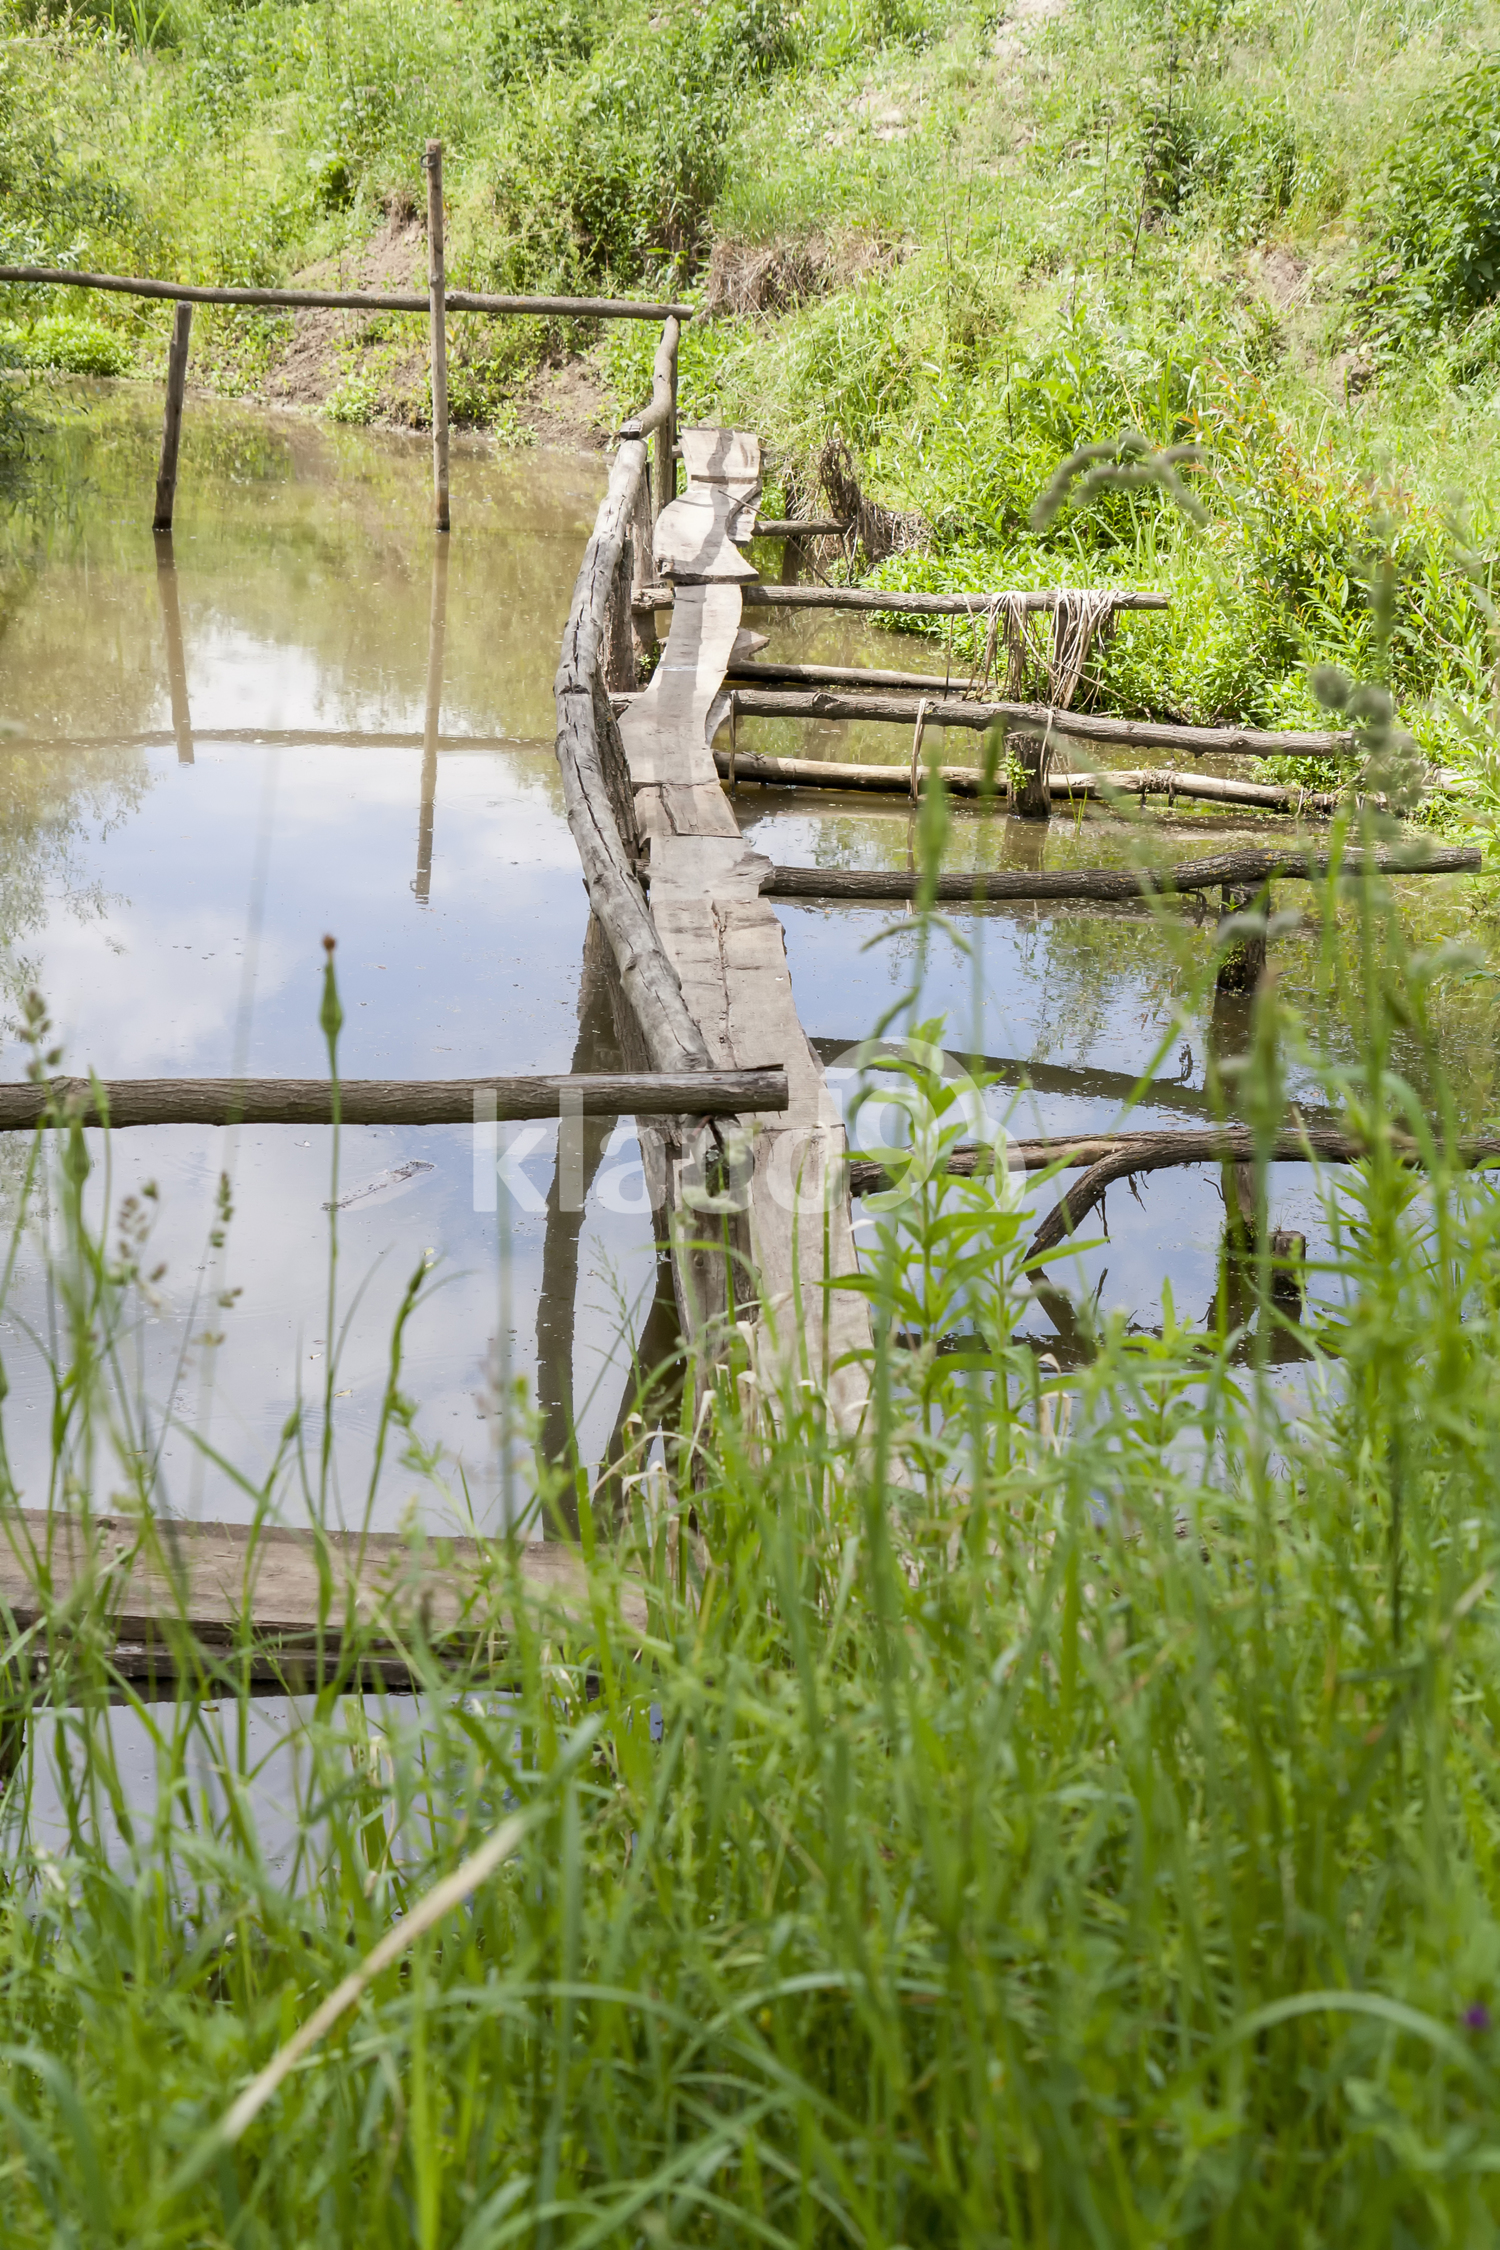 Old wooden bridge over the lake overgrown with grass